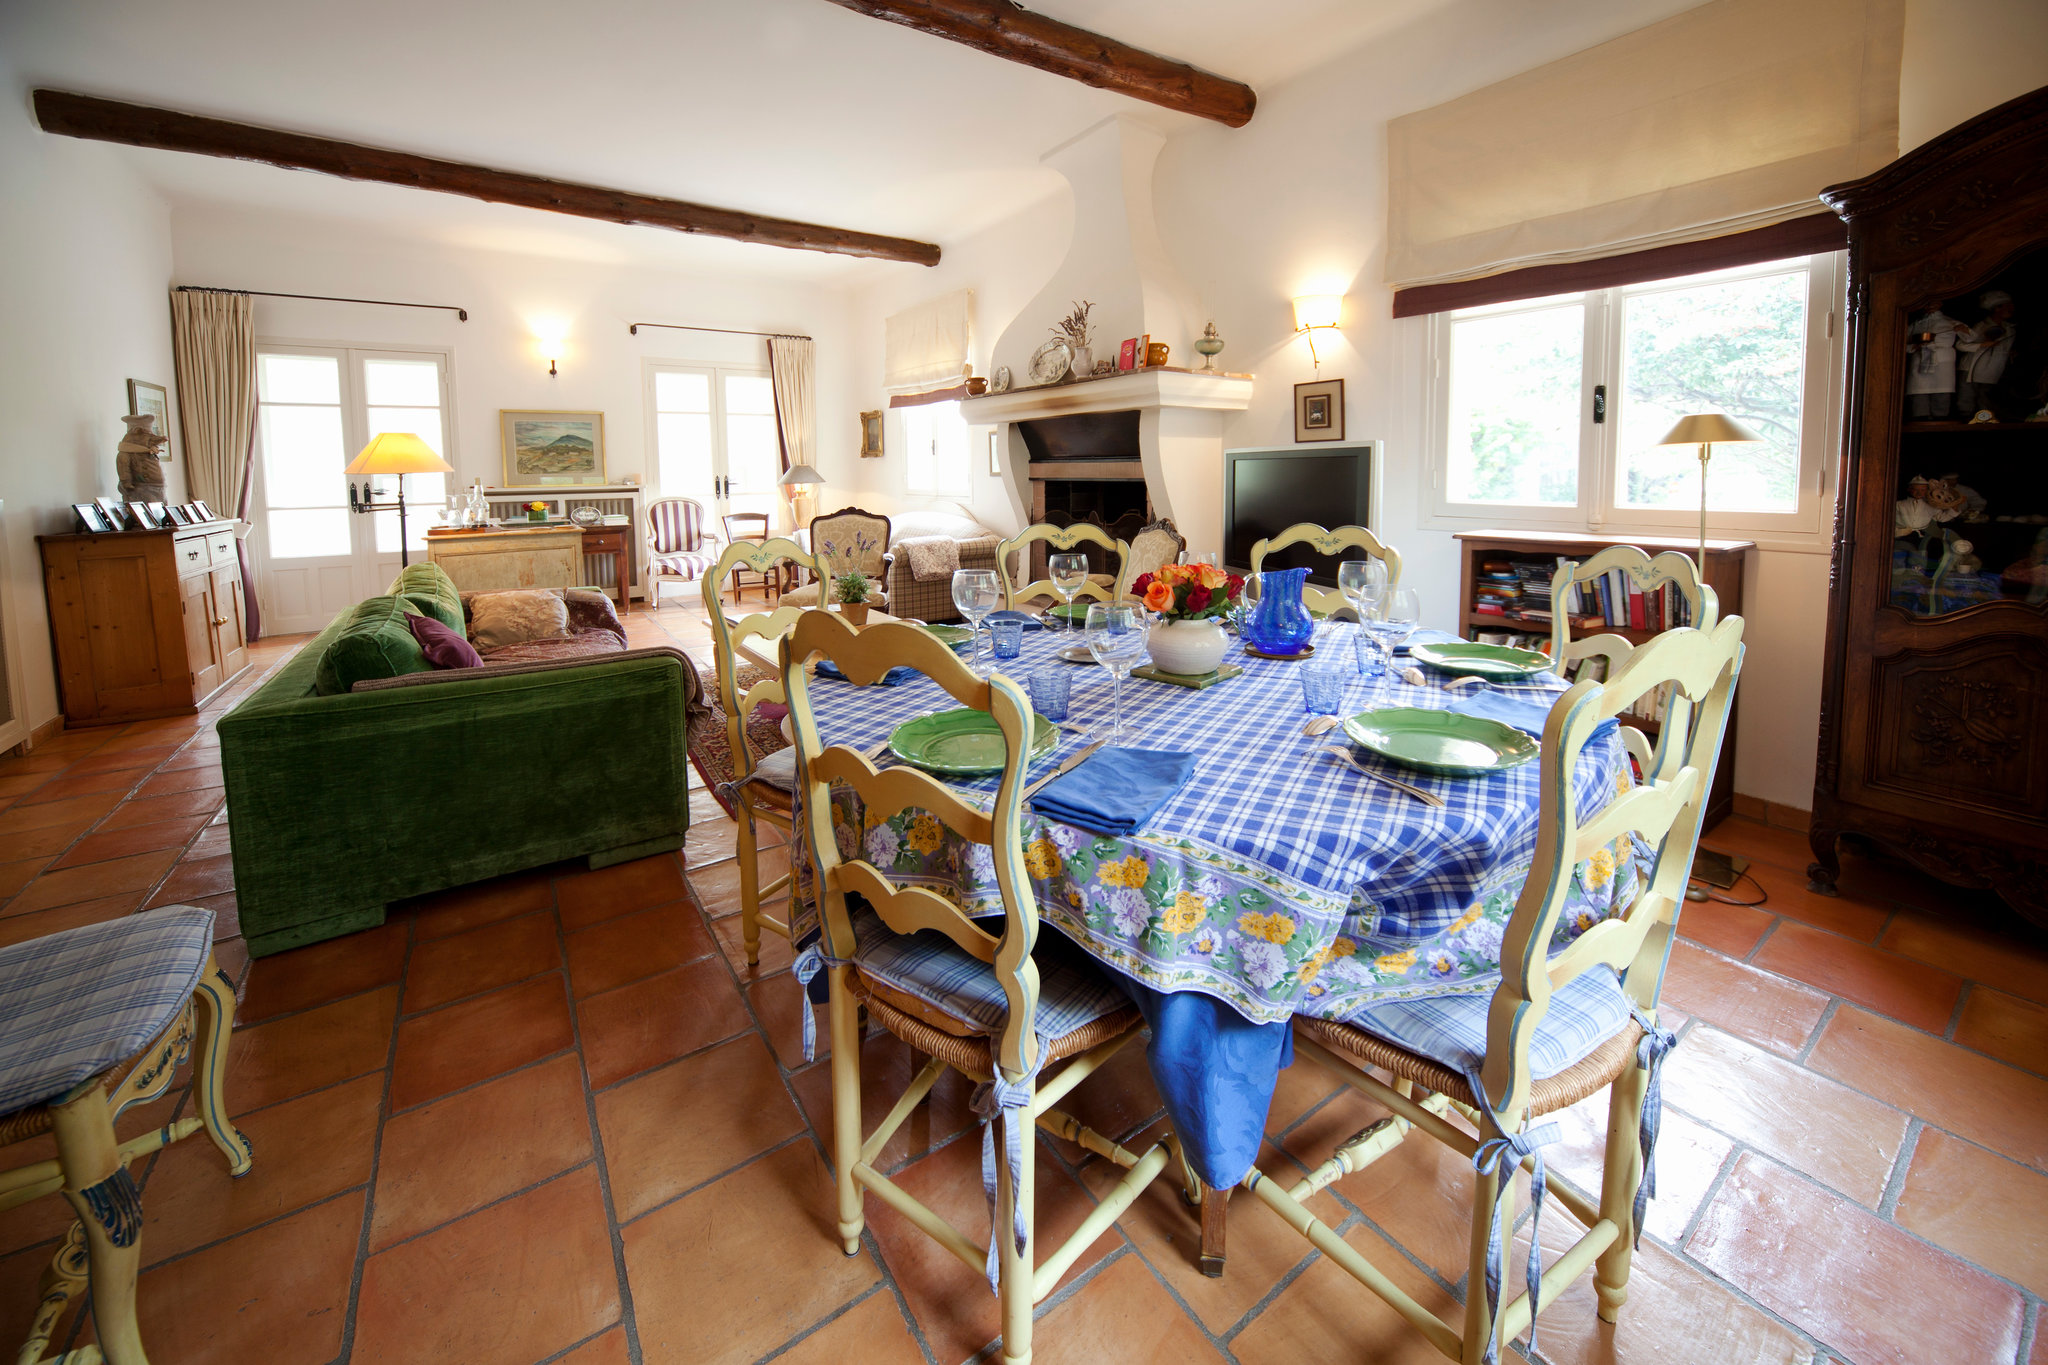 Julia Child - great room at La Pitchoune, Julia Child's house in the south of France - NY Times via Atticmag